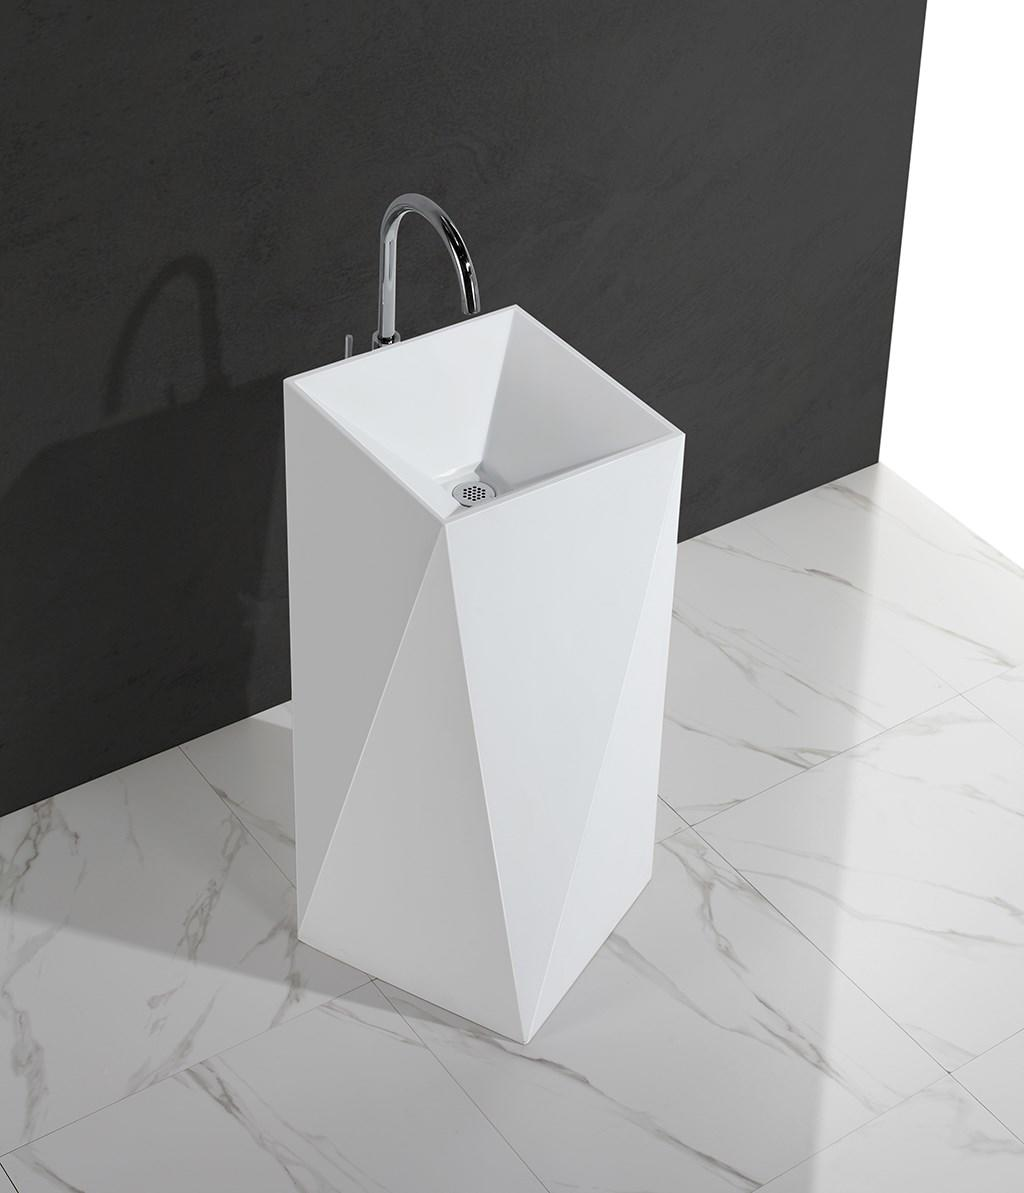 Diamond design white marble acrylic solid surface bathroom wasn basin KKR-1387-1